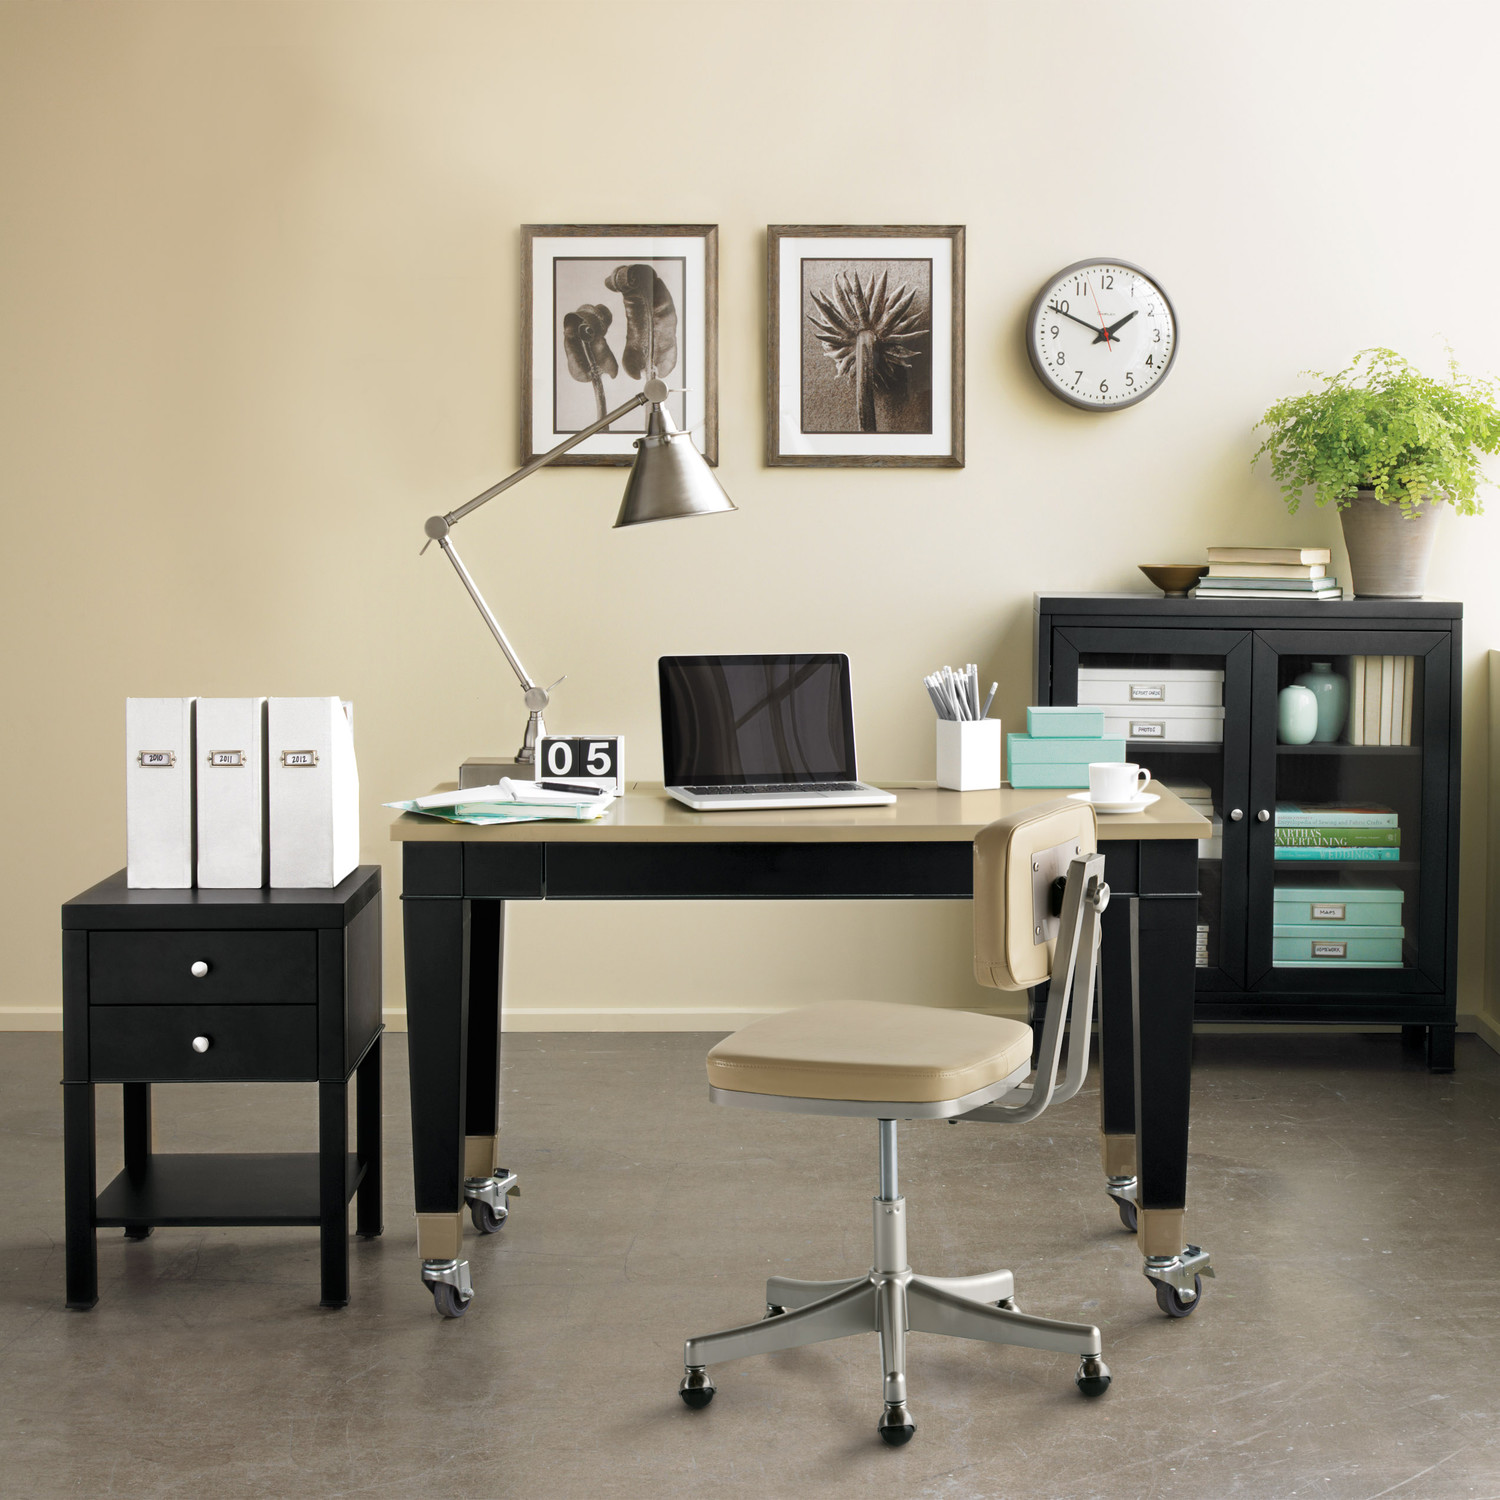 craft room desk ideas martha stewart home office furniture martha stewart 4021